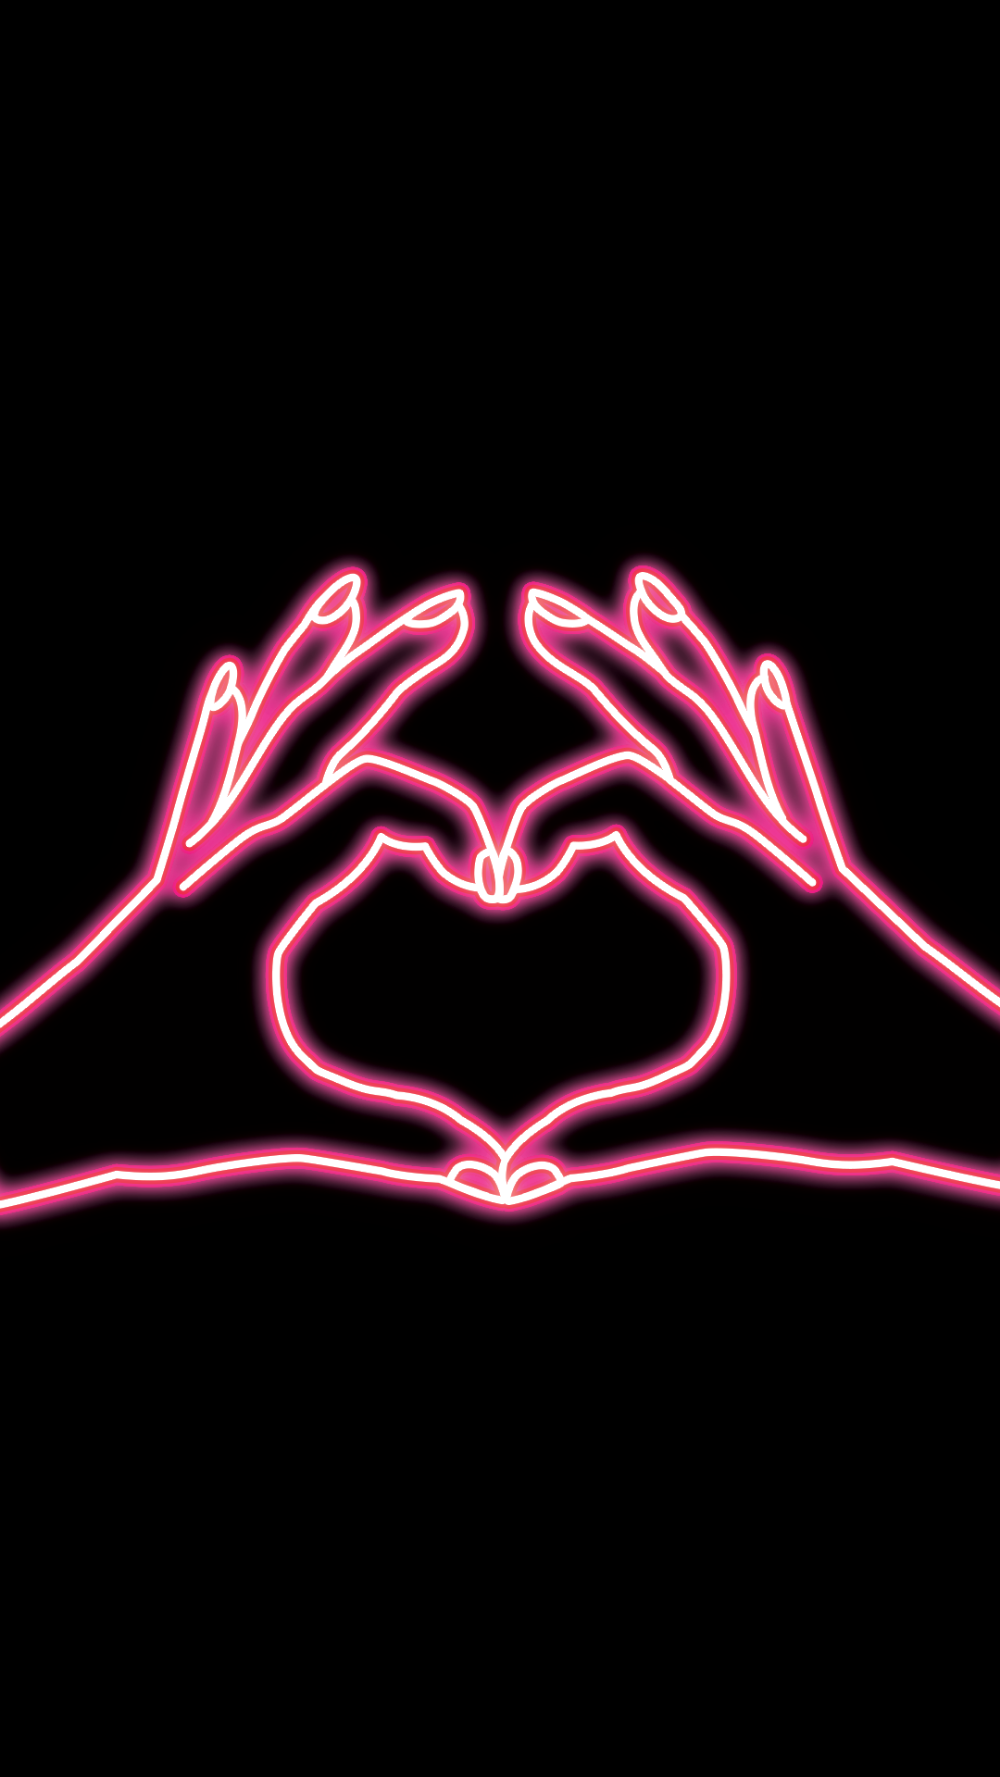 I Heart You Wallpaper The Ardenebabe Club Wallpaper Iphone Neon Neon Light Wallpaper Neon Wallpaper